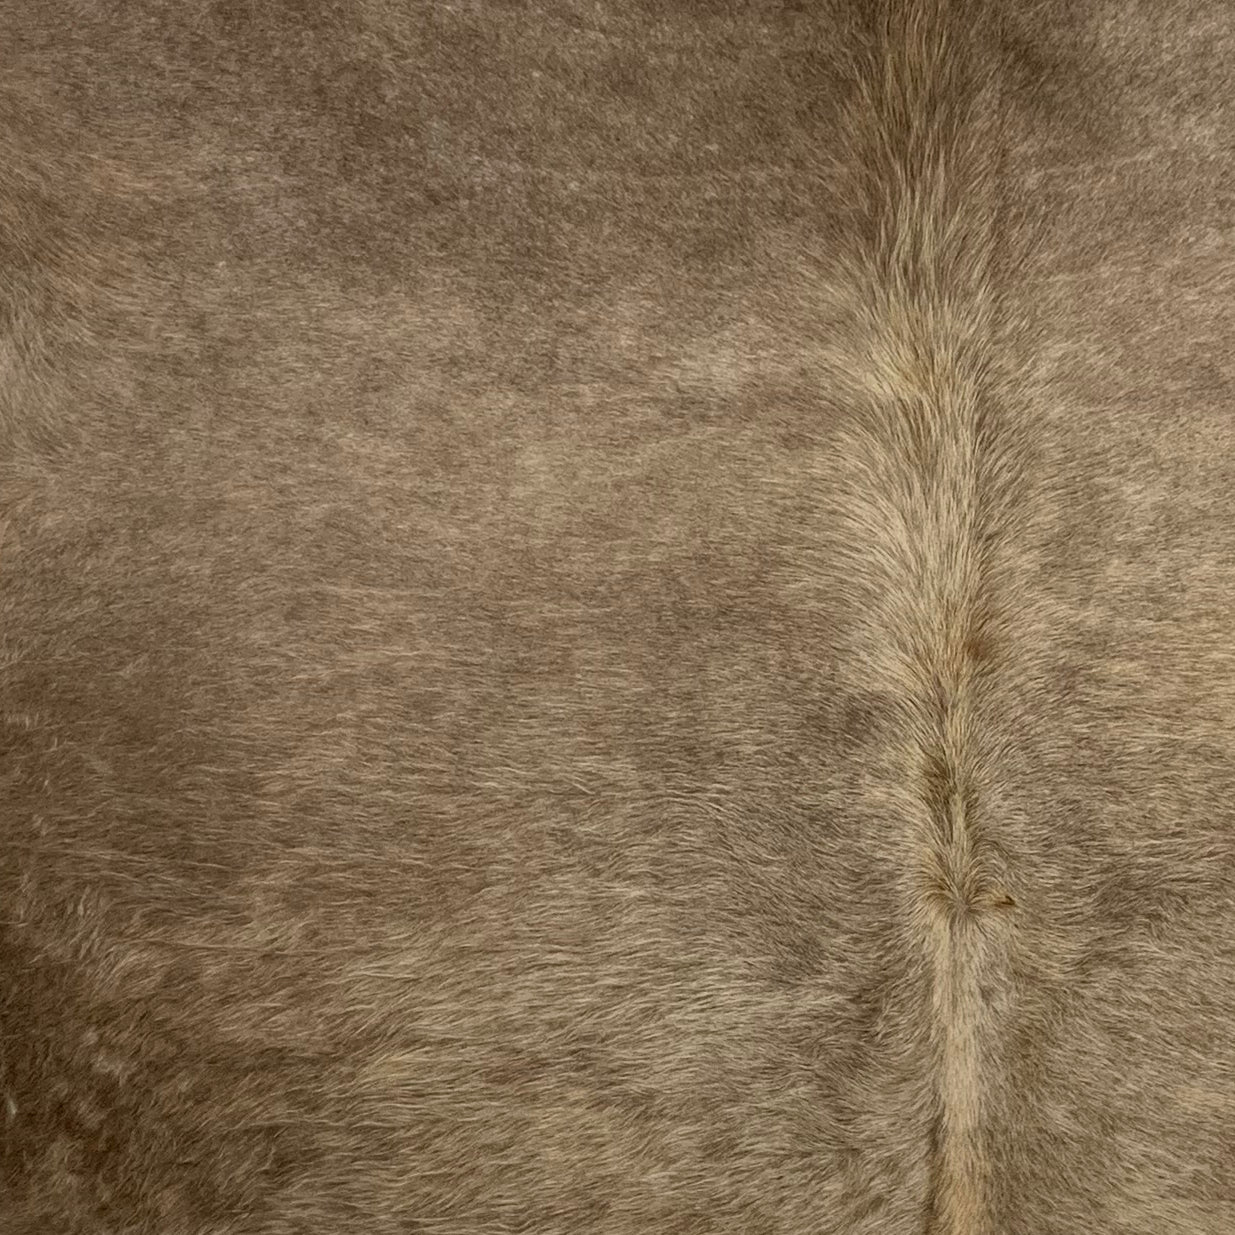 Brazilian Solid Medium Brown Cowhide (BRSL069)